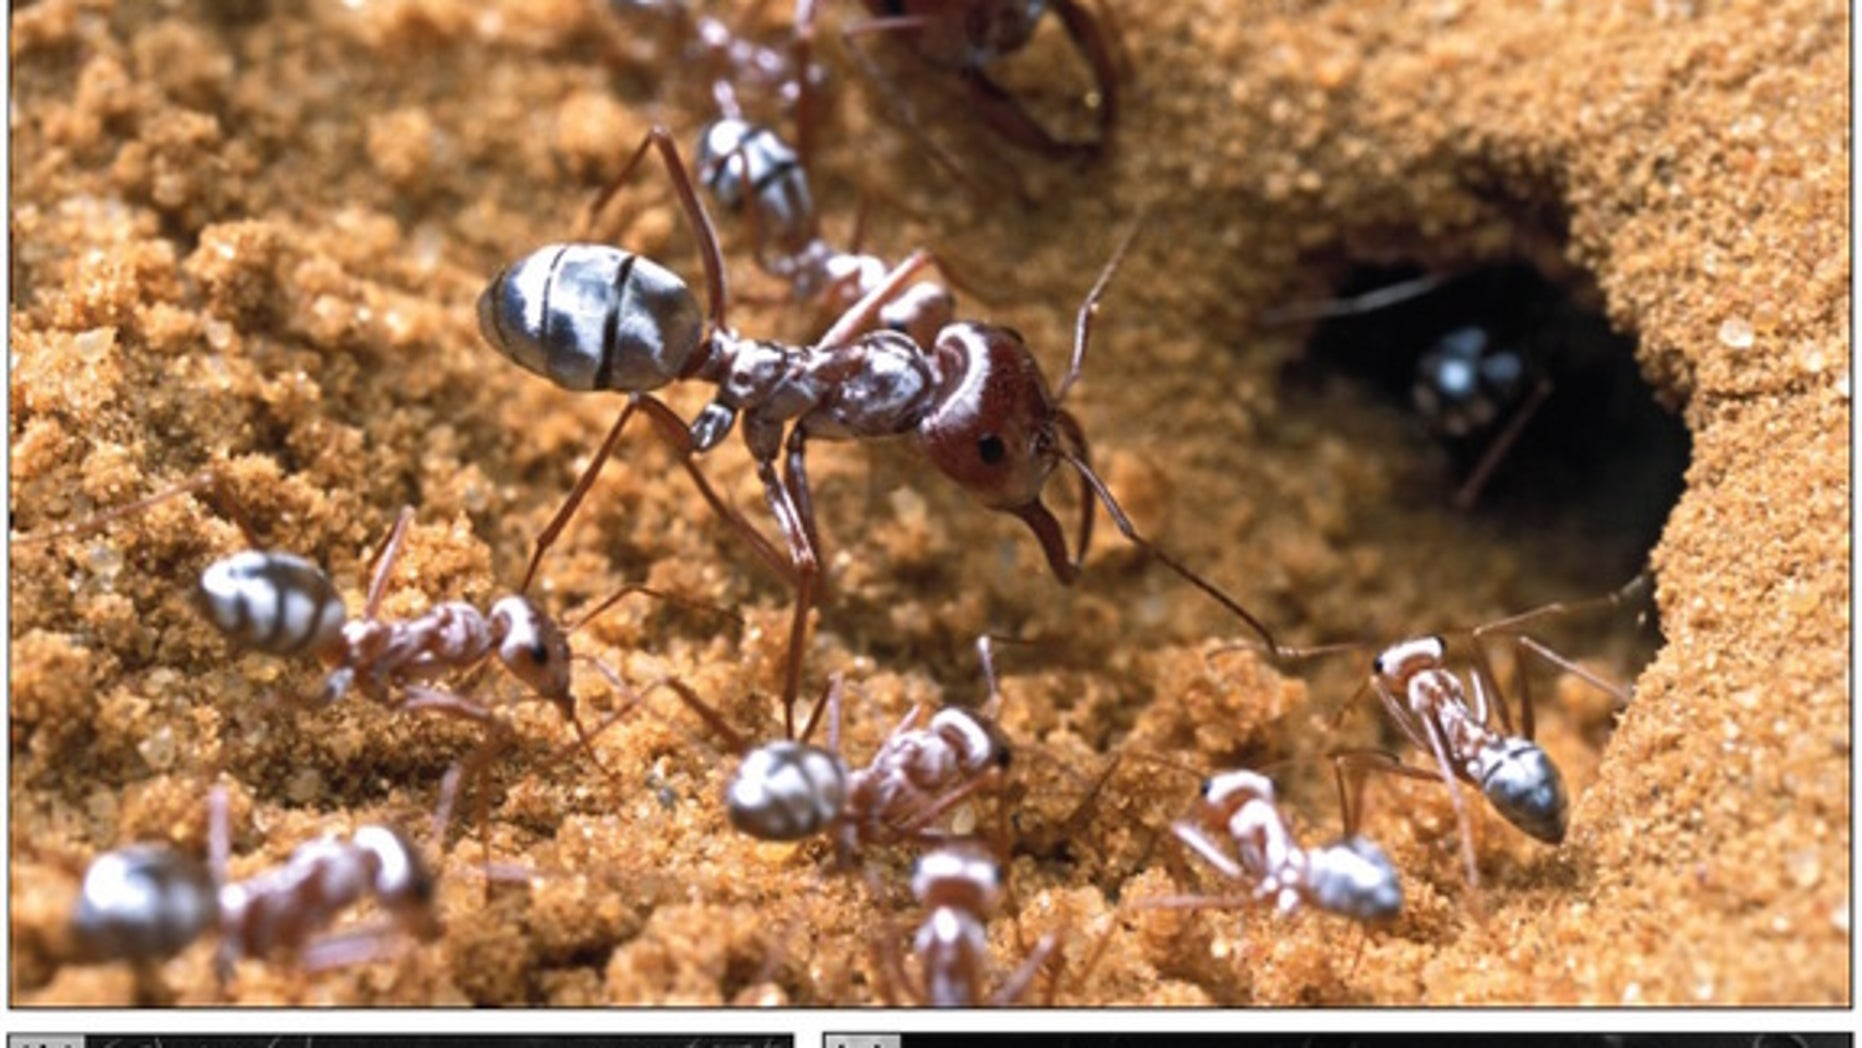 Saharan silver ants sport a body full of silvery hairs that act as tiny prisms, reflecting light completely and helping the tiny creatures stay cool in the blistering heat of the Sahara Desert, new research finds.